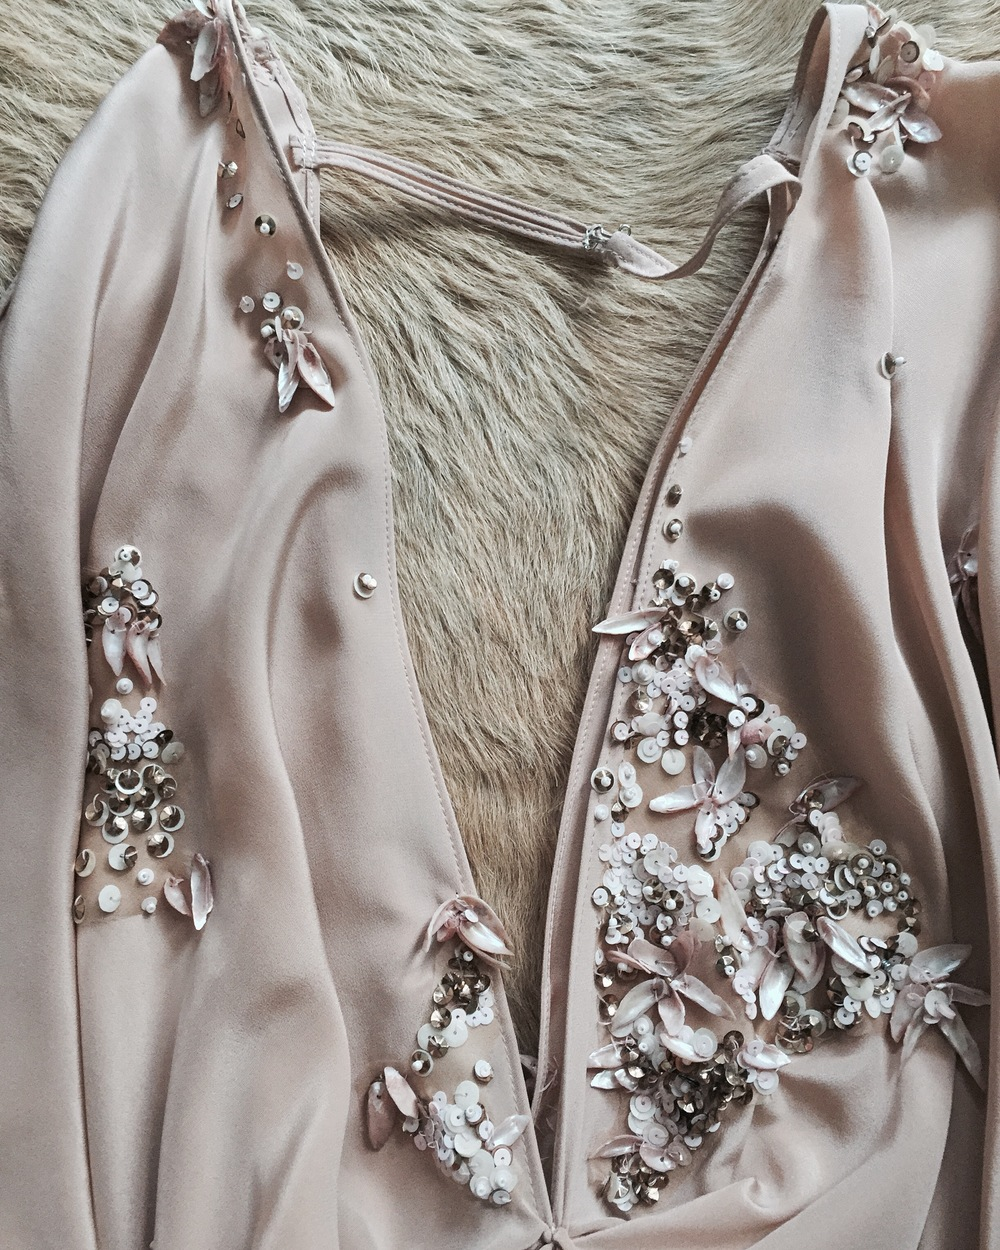 The Baby Joey Playsuit is fizzing with organic floral sequins, crystals and seashells; all hand tacked to an ultra-fine silk crepe that melts across the wearer.